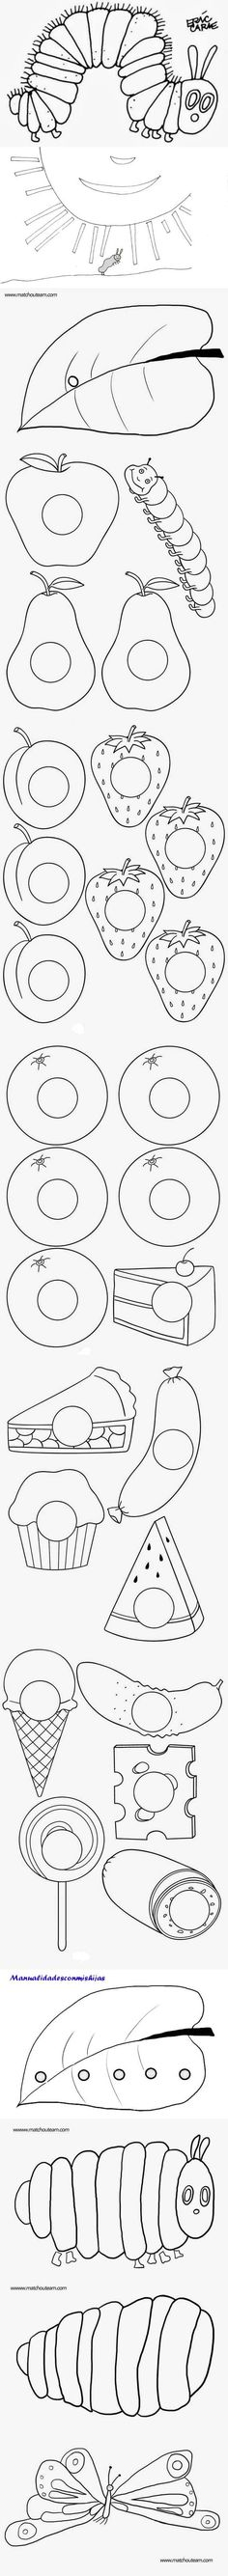 Hungry Caterpillar Coloring Page . Hungry Caterpillar Coloring Page . 8 Best Of Very Hungry Caterpillar Sequencing Eric Carle, Hungry Caterpillar Activities, Hungry Caterpillar Party, Educational Activities For Kids, Book Activities, Creative Curriculum, Butterfly Crafts, Book Crafts, Coloring Pages